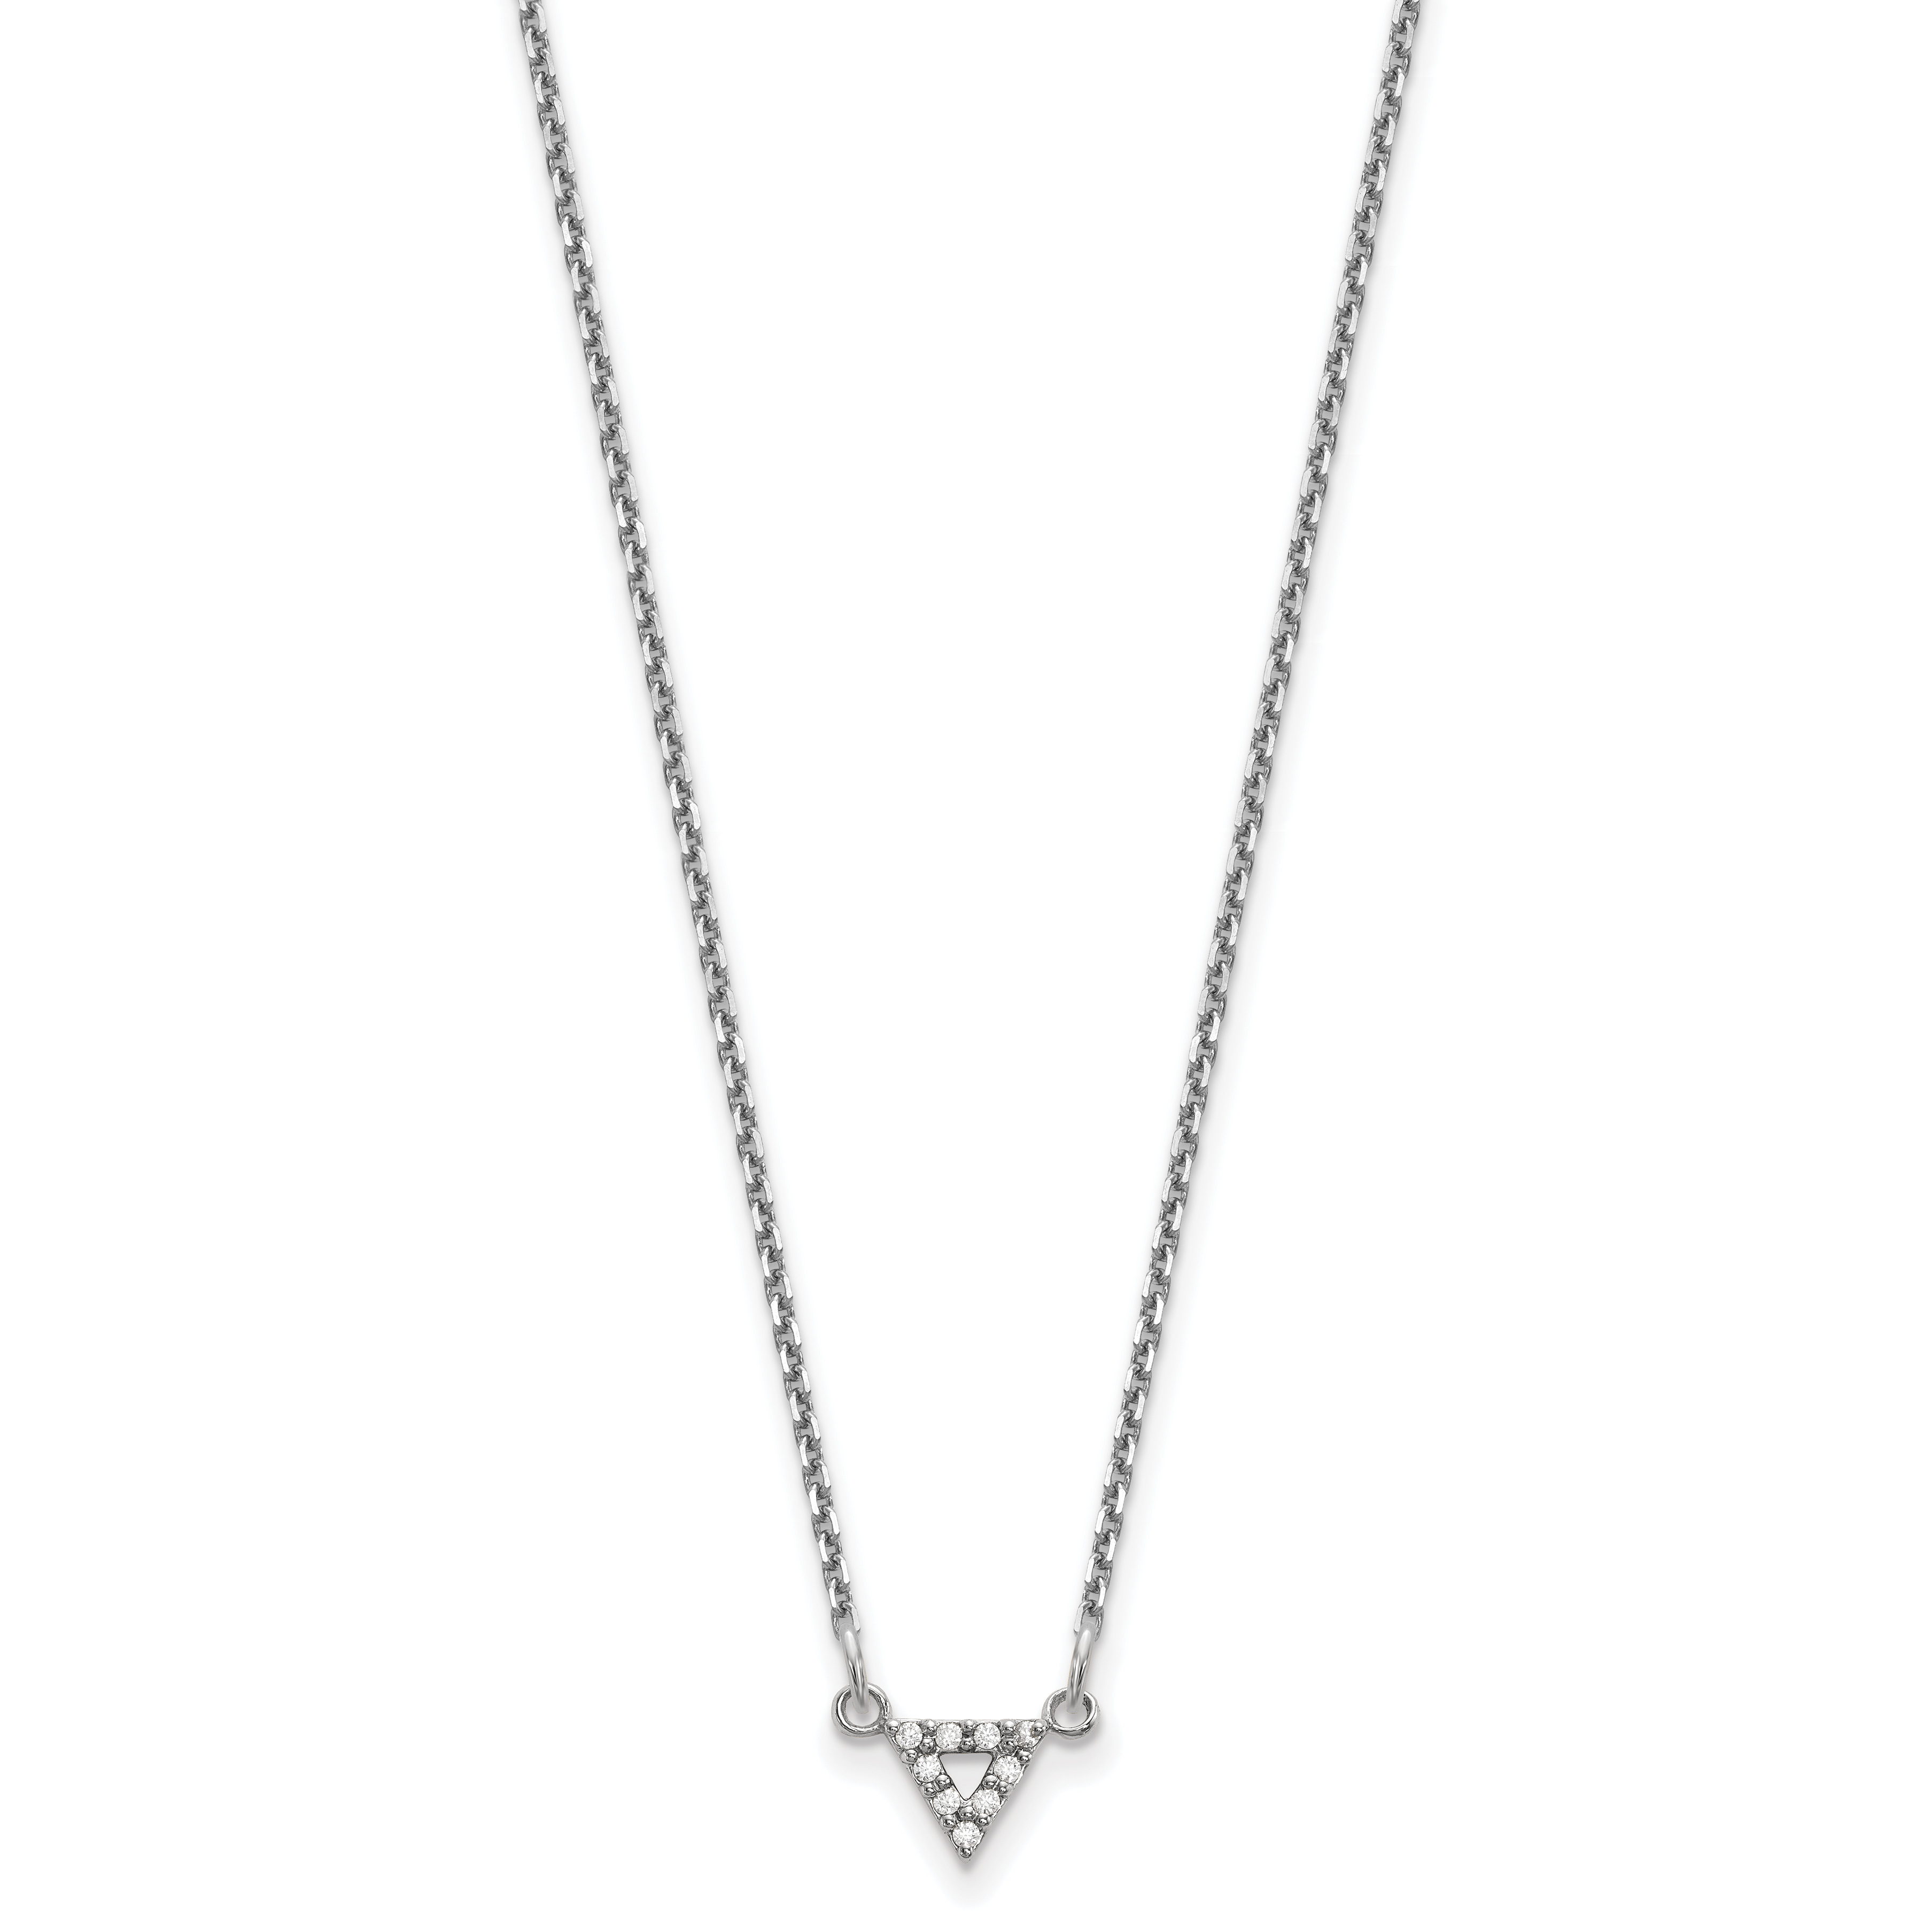 Mia Diamonds 14k Yellow Gold 1.6mm 16in Poppy Leather Cord Necklace